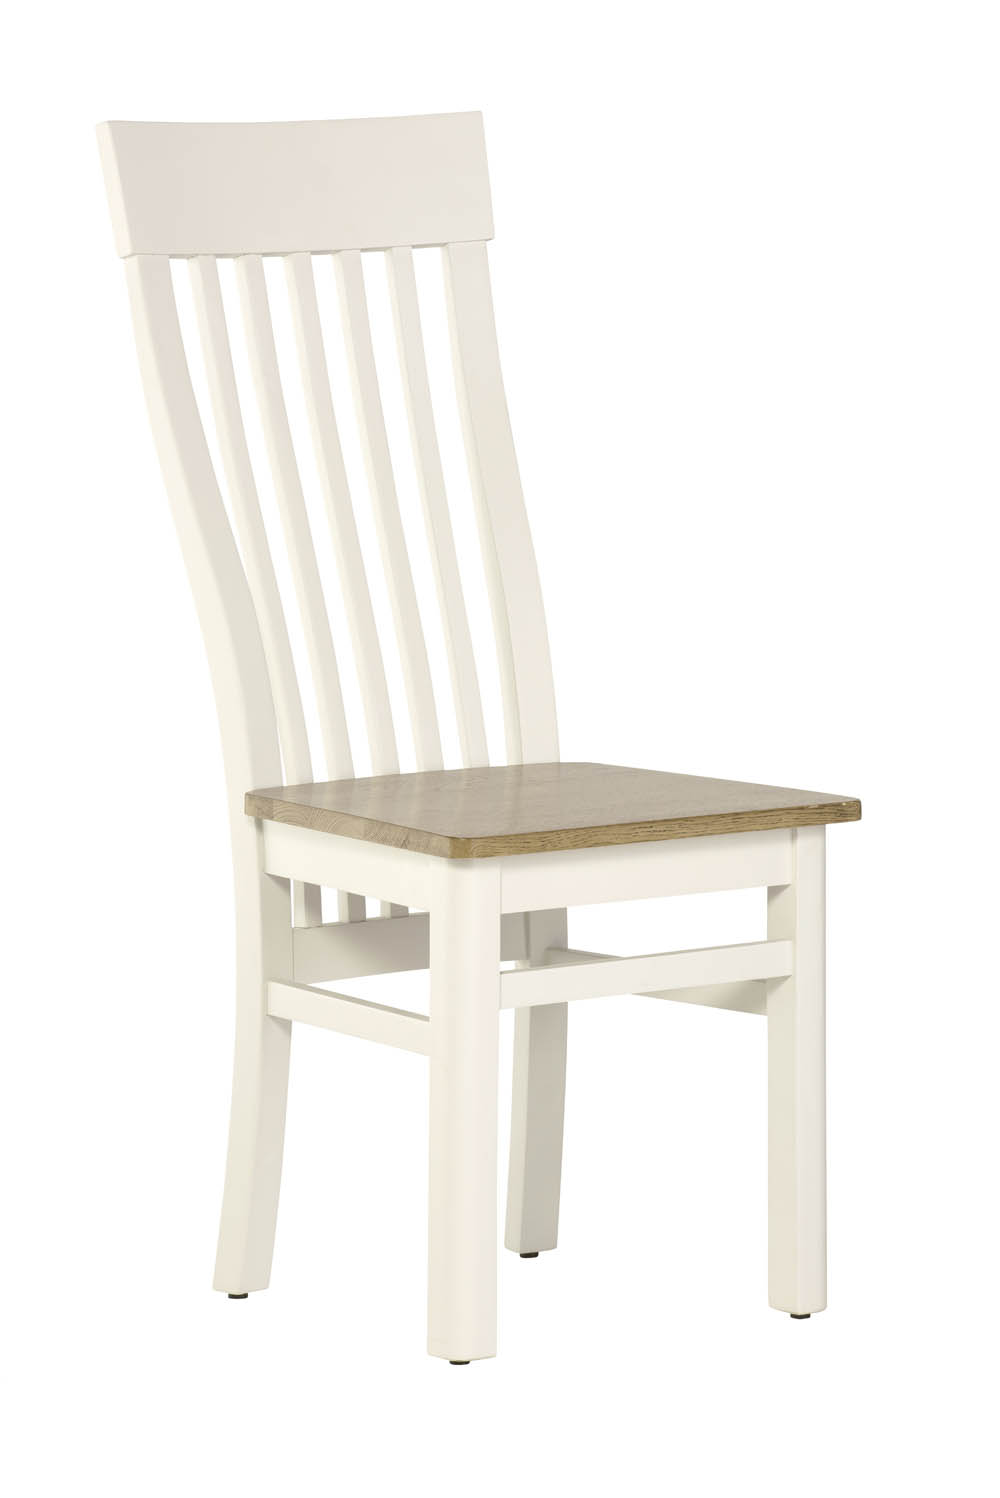 https://www.firstfurniture.co.uk/pub/media/catalog/product/m/a/mal04..jpg